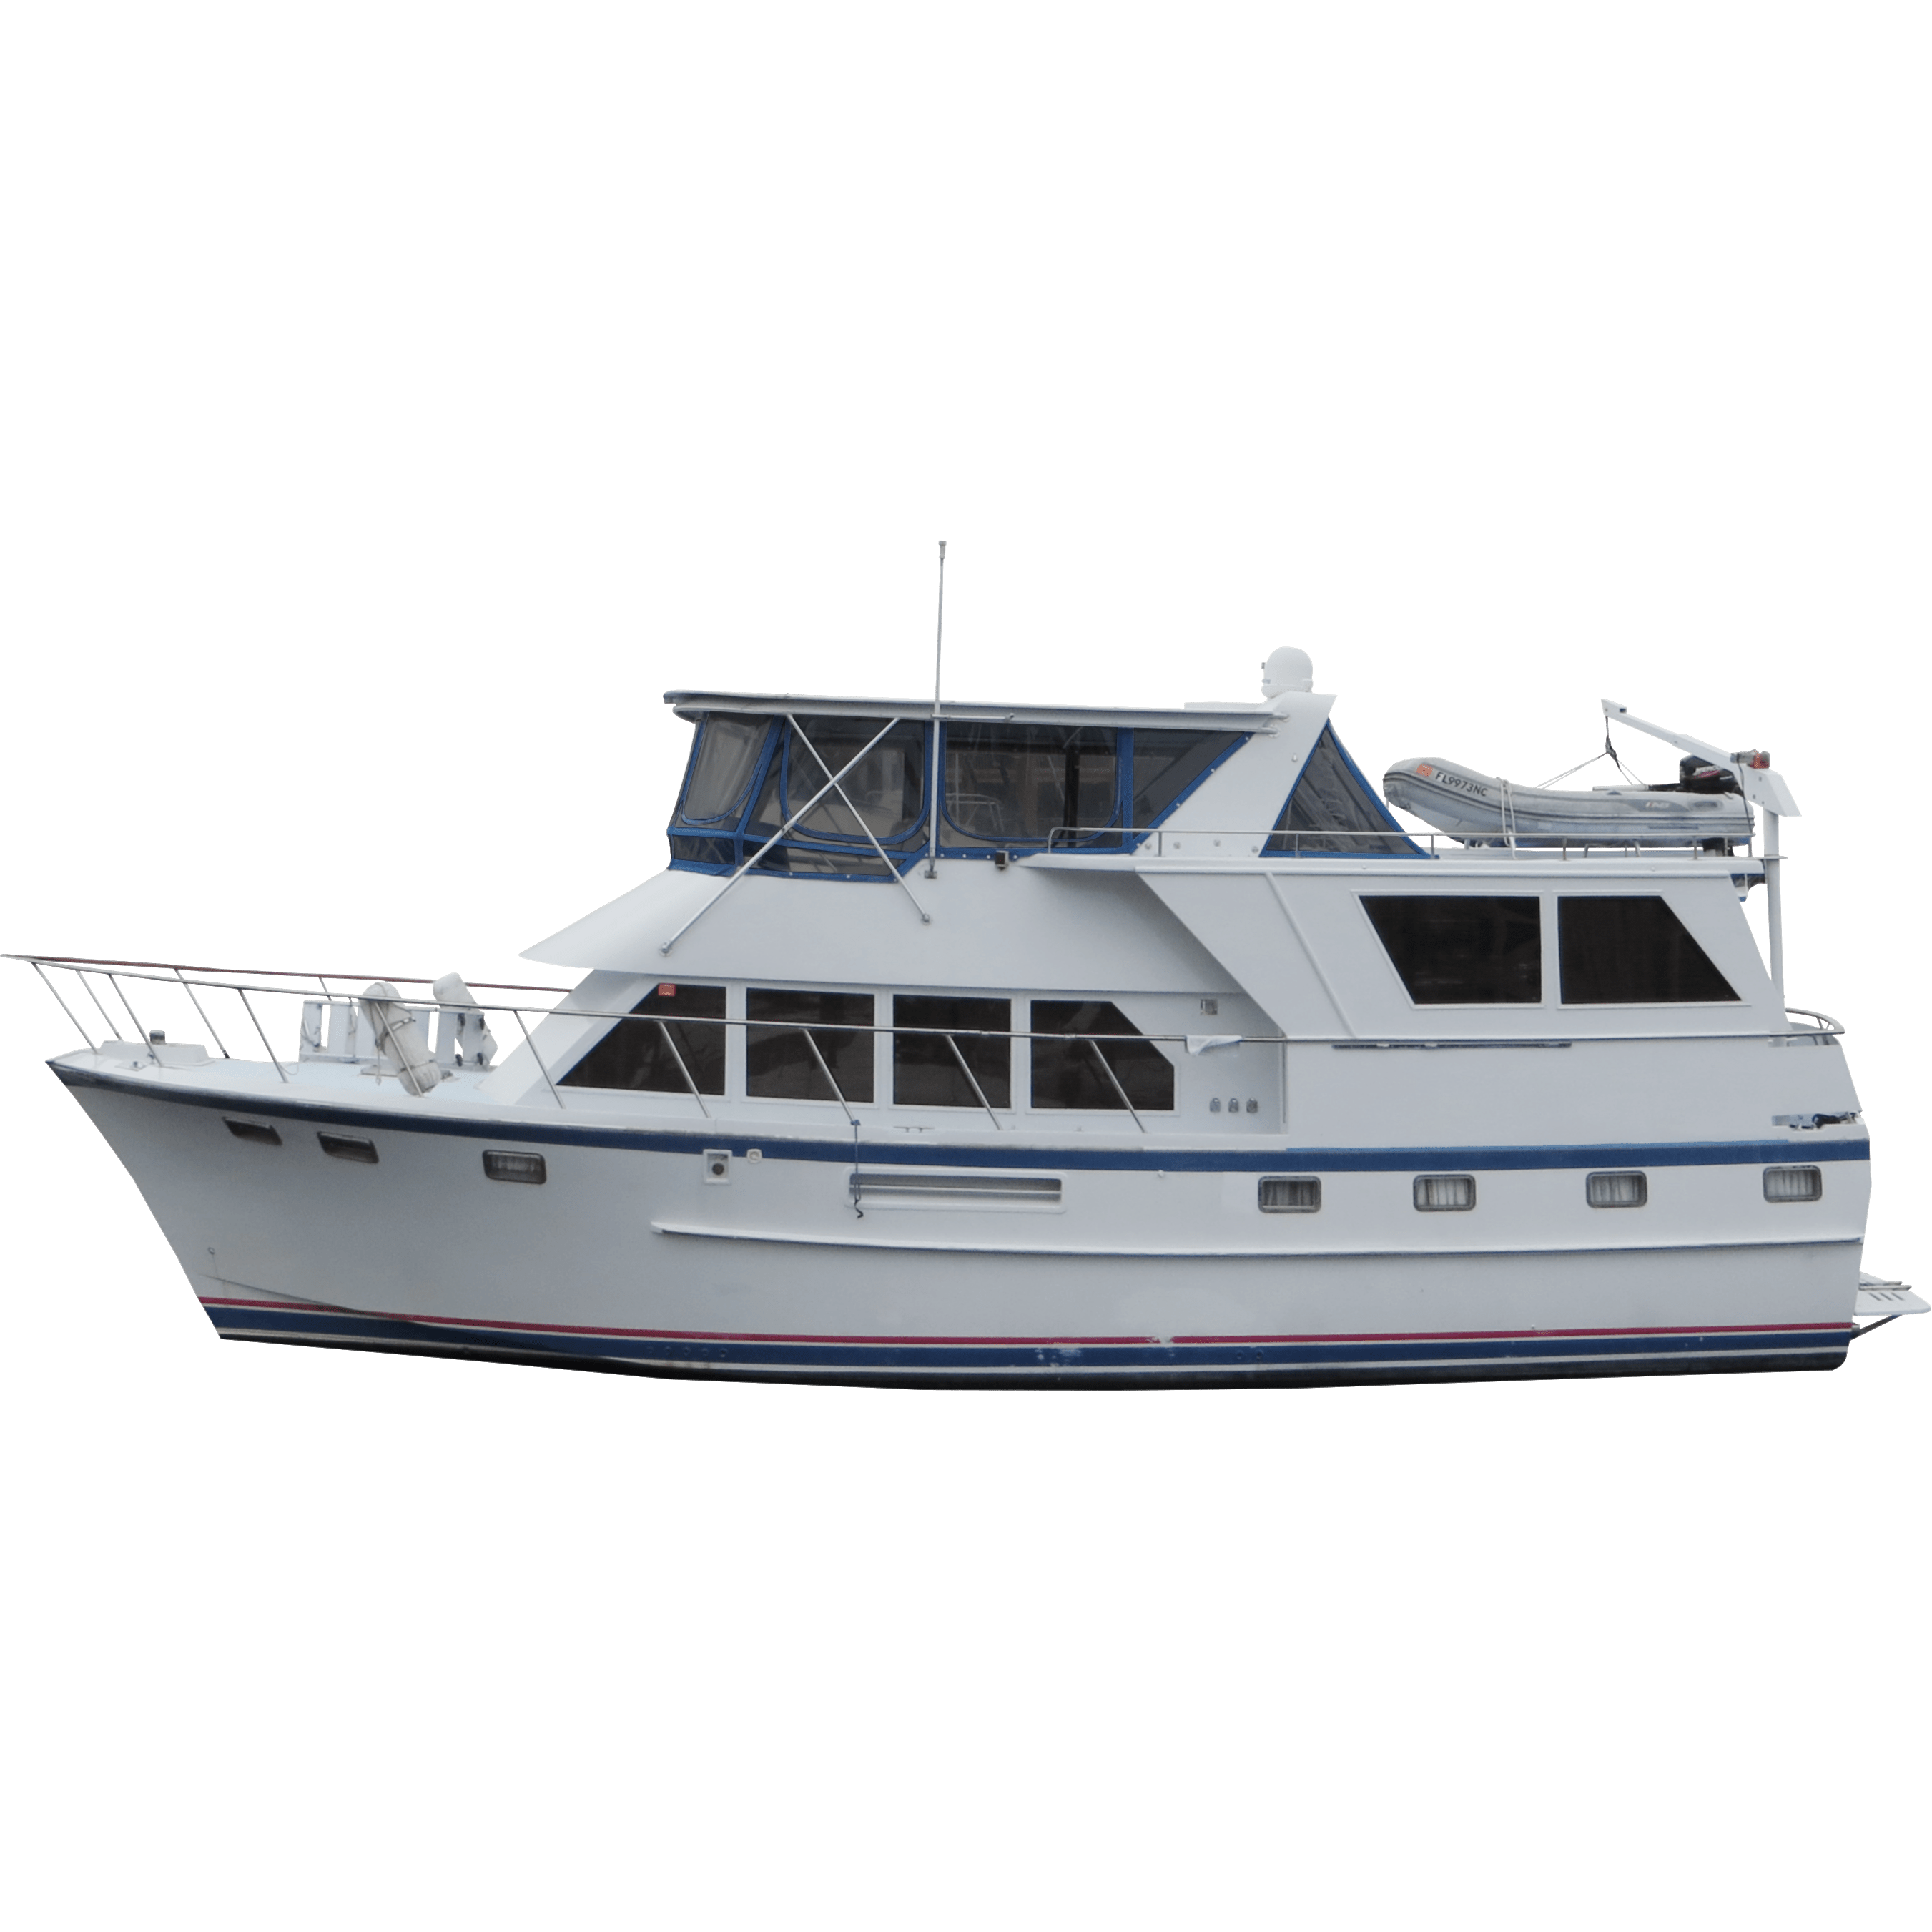 transport · boats - Boat Ship PNG